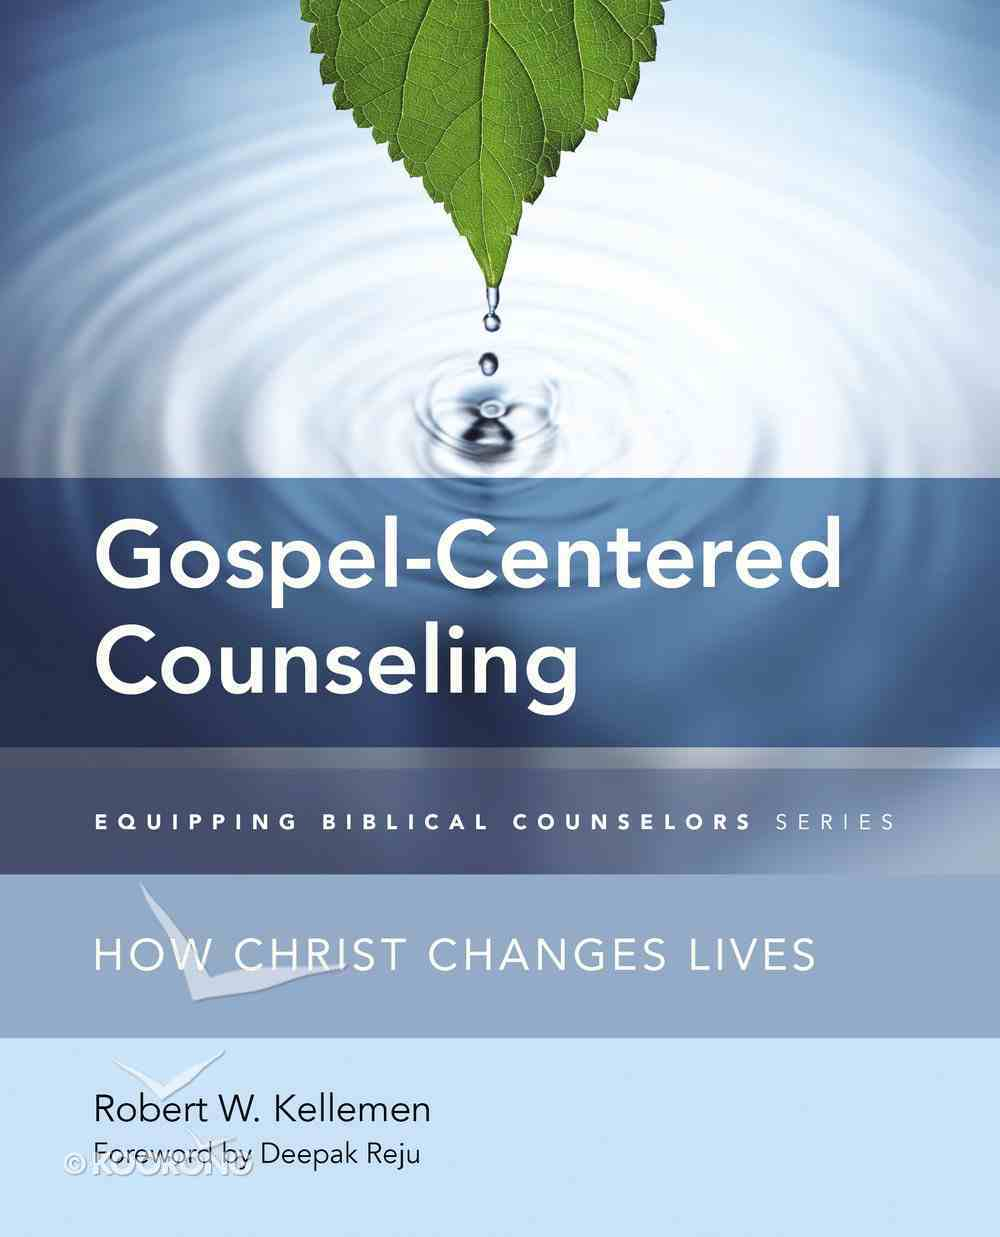 Gospel-Centered Counseling eBook